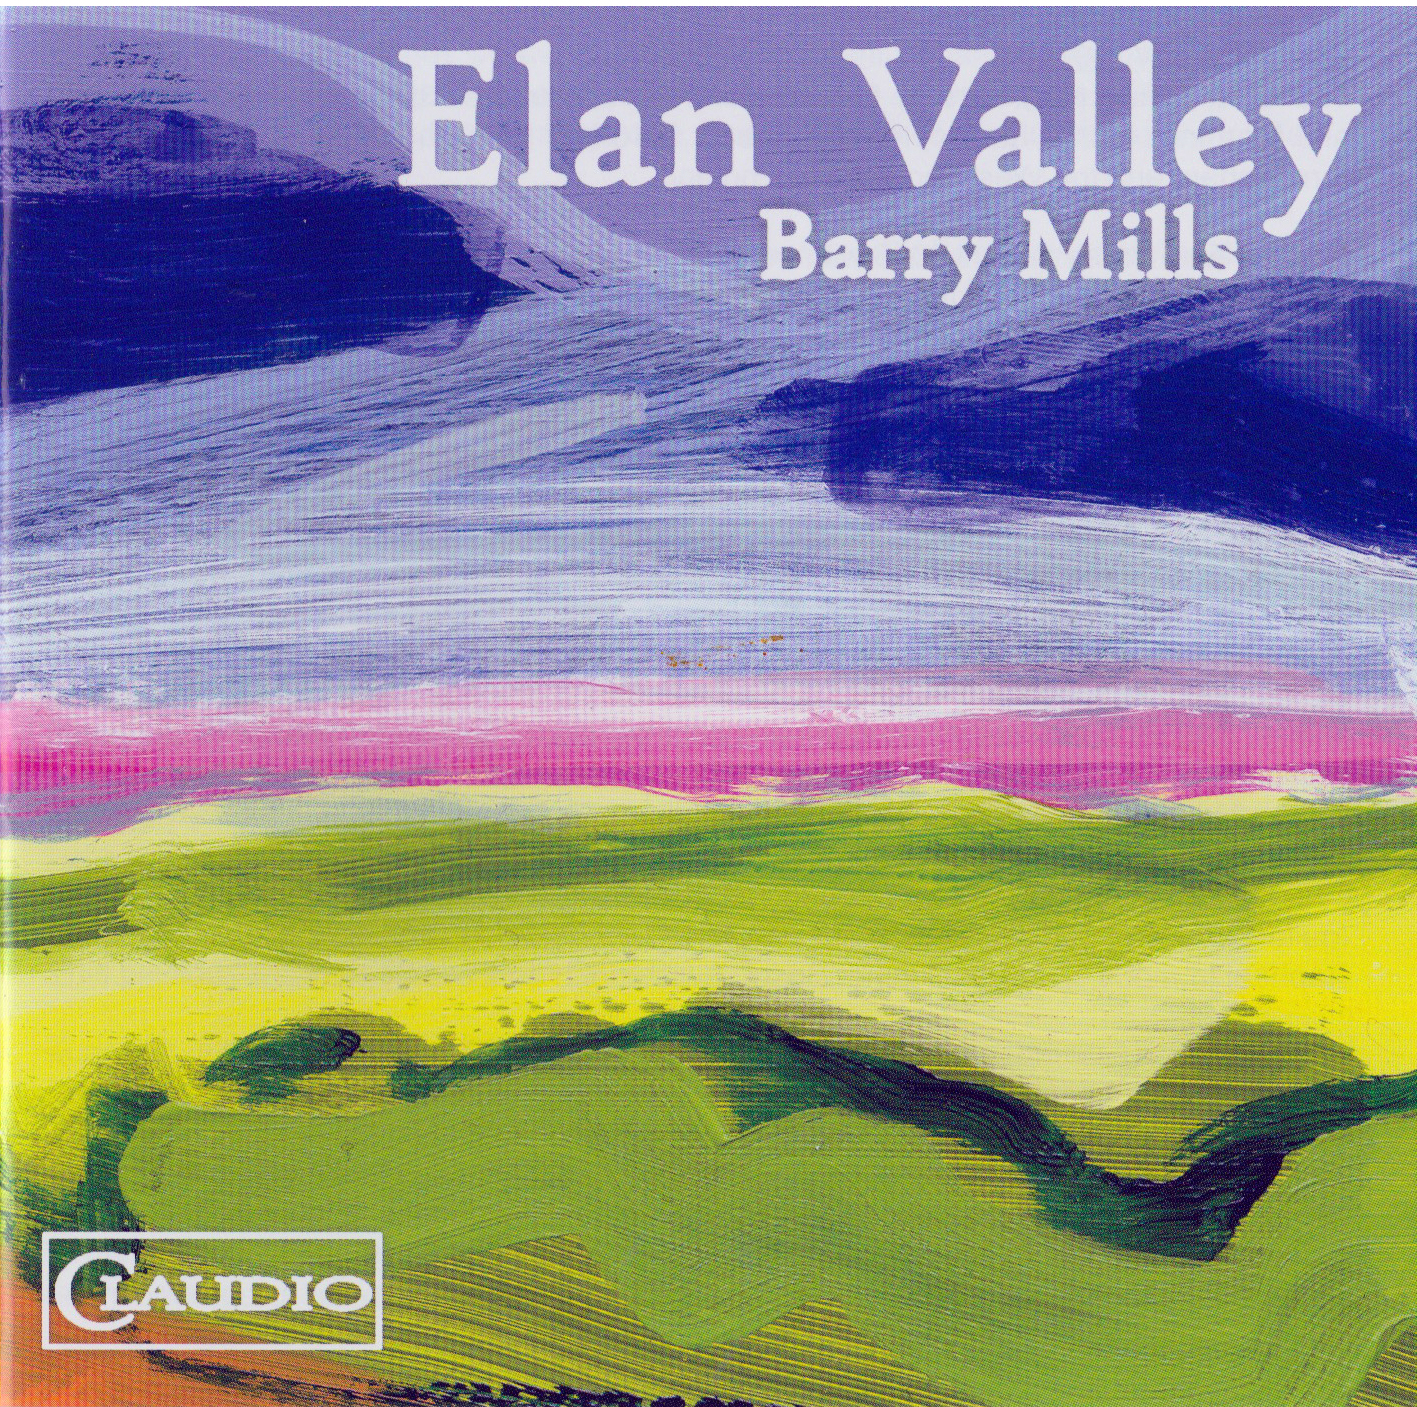 Cover art for Barry Mills: 'Elan Valley' on Claudio.